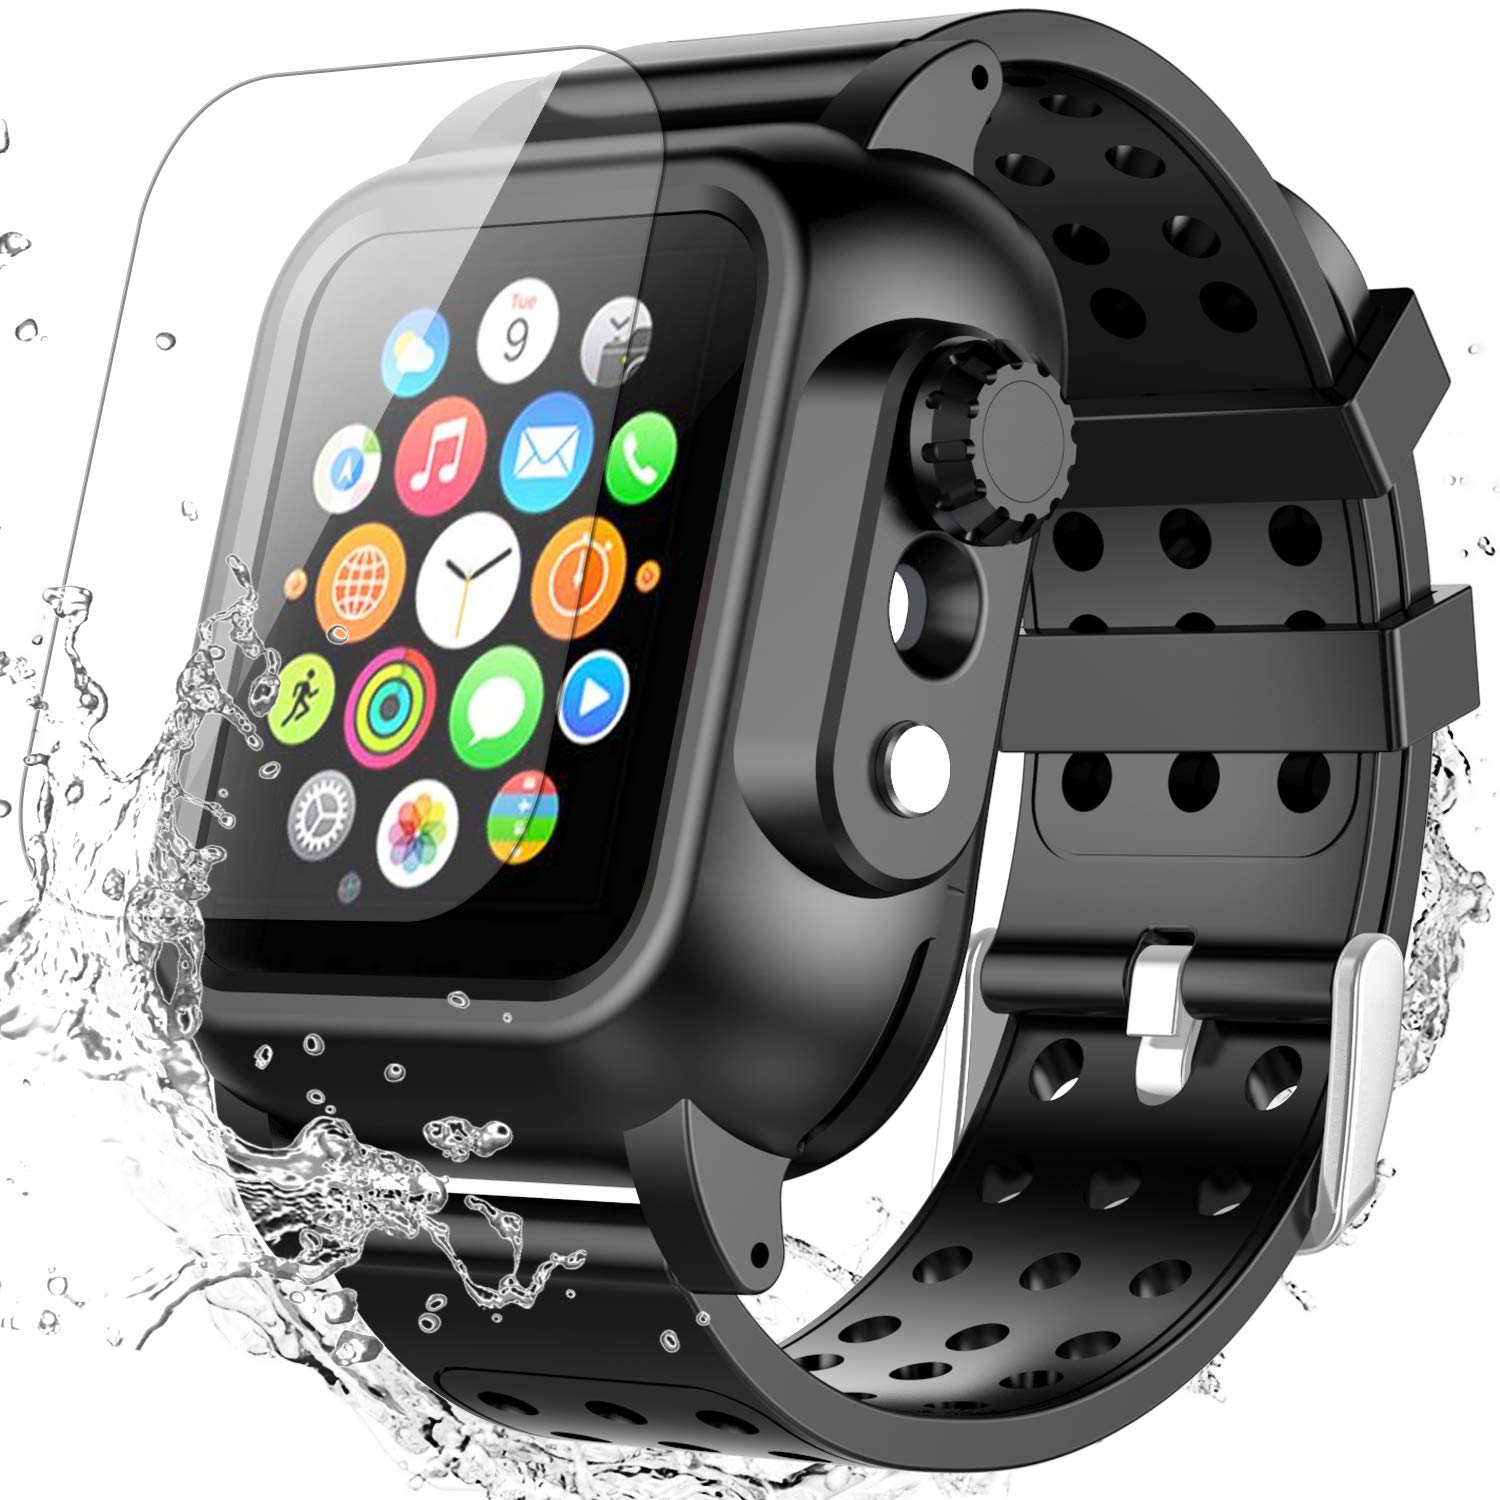 Apple Watch Series 4 44mm Case with Band, SPIDERCASE Built-in Screen Protector Full Body Rugged Armor Case, Daily Waterproof, Anti-Scratch, Shockproof, Soft Silicone Band for Apple Watch Series 4 44mm